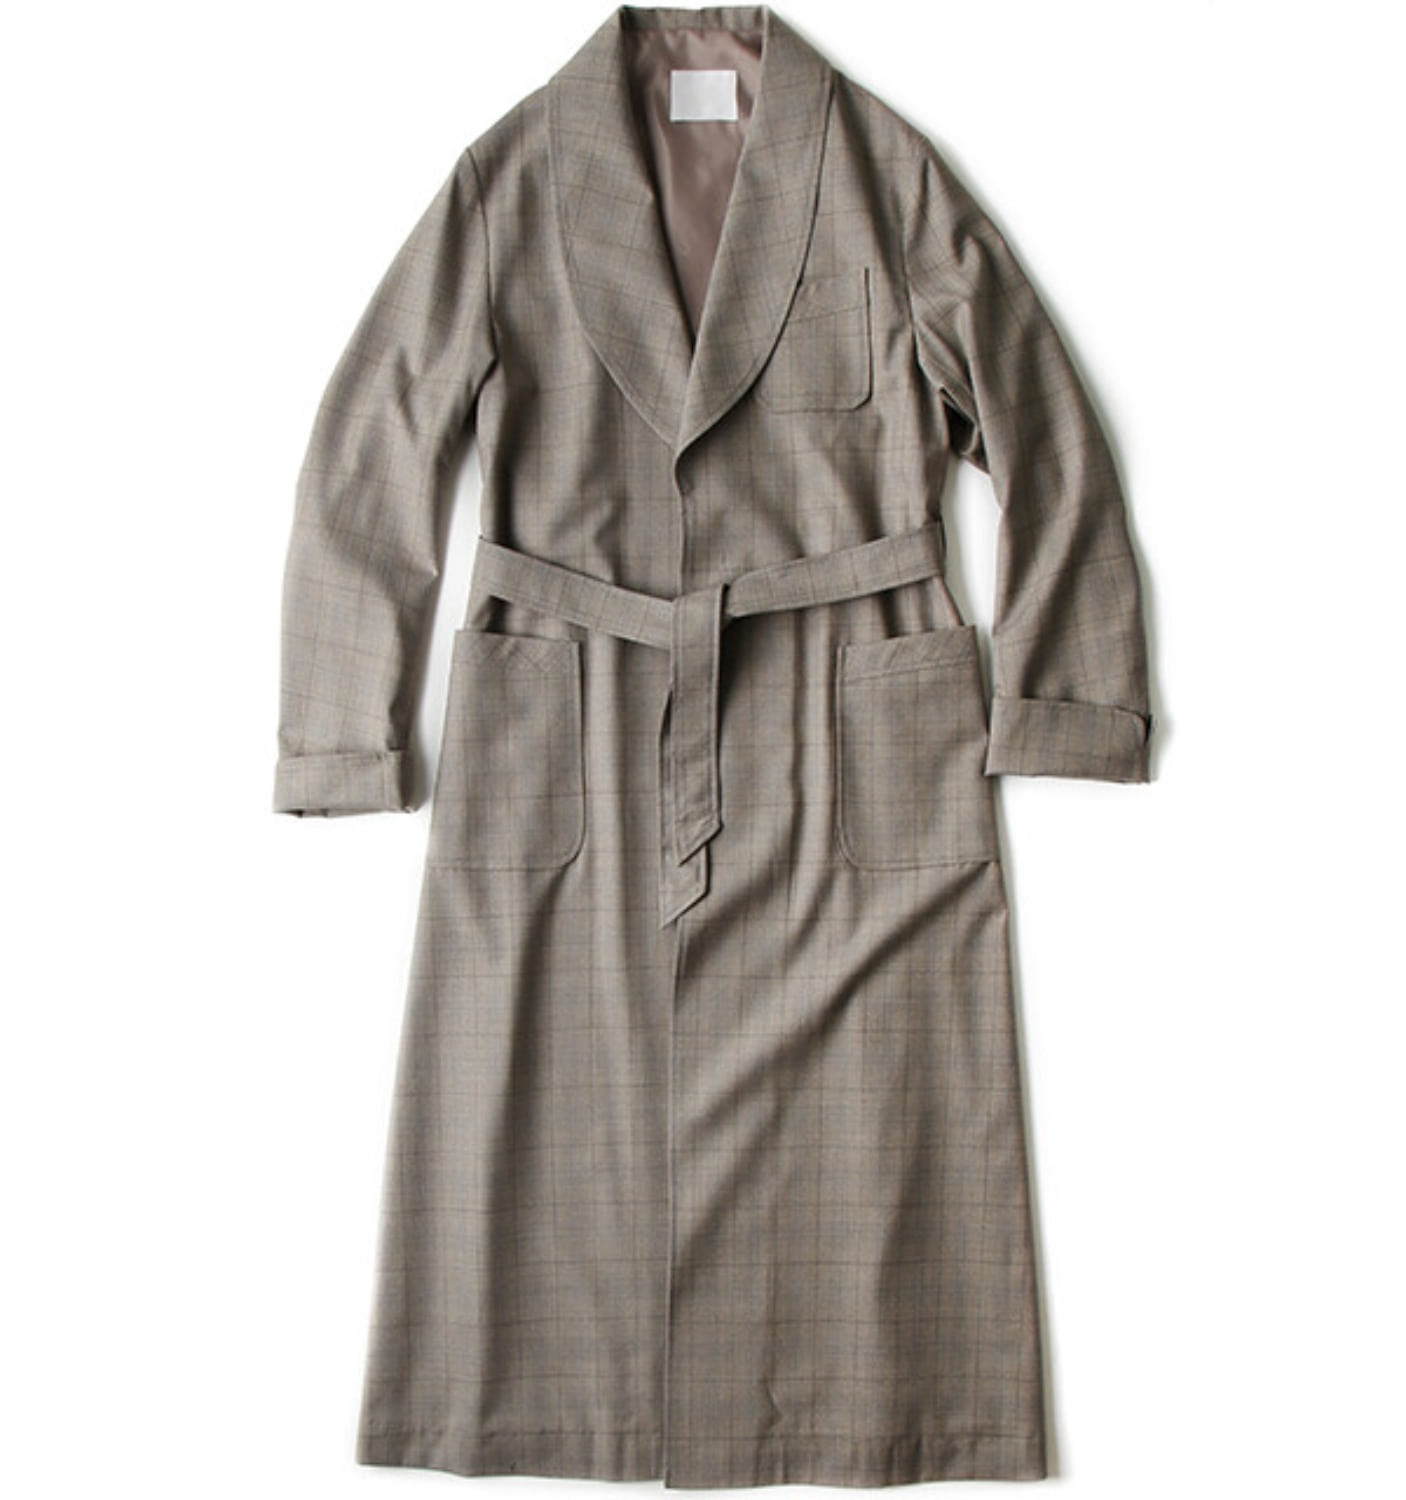 RELAXED ROBE COAT KHAKI BLUE CHECK